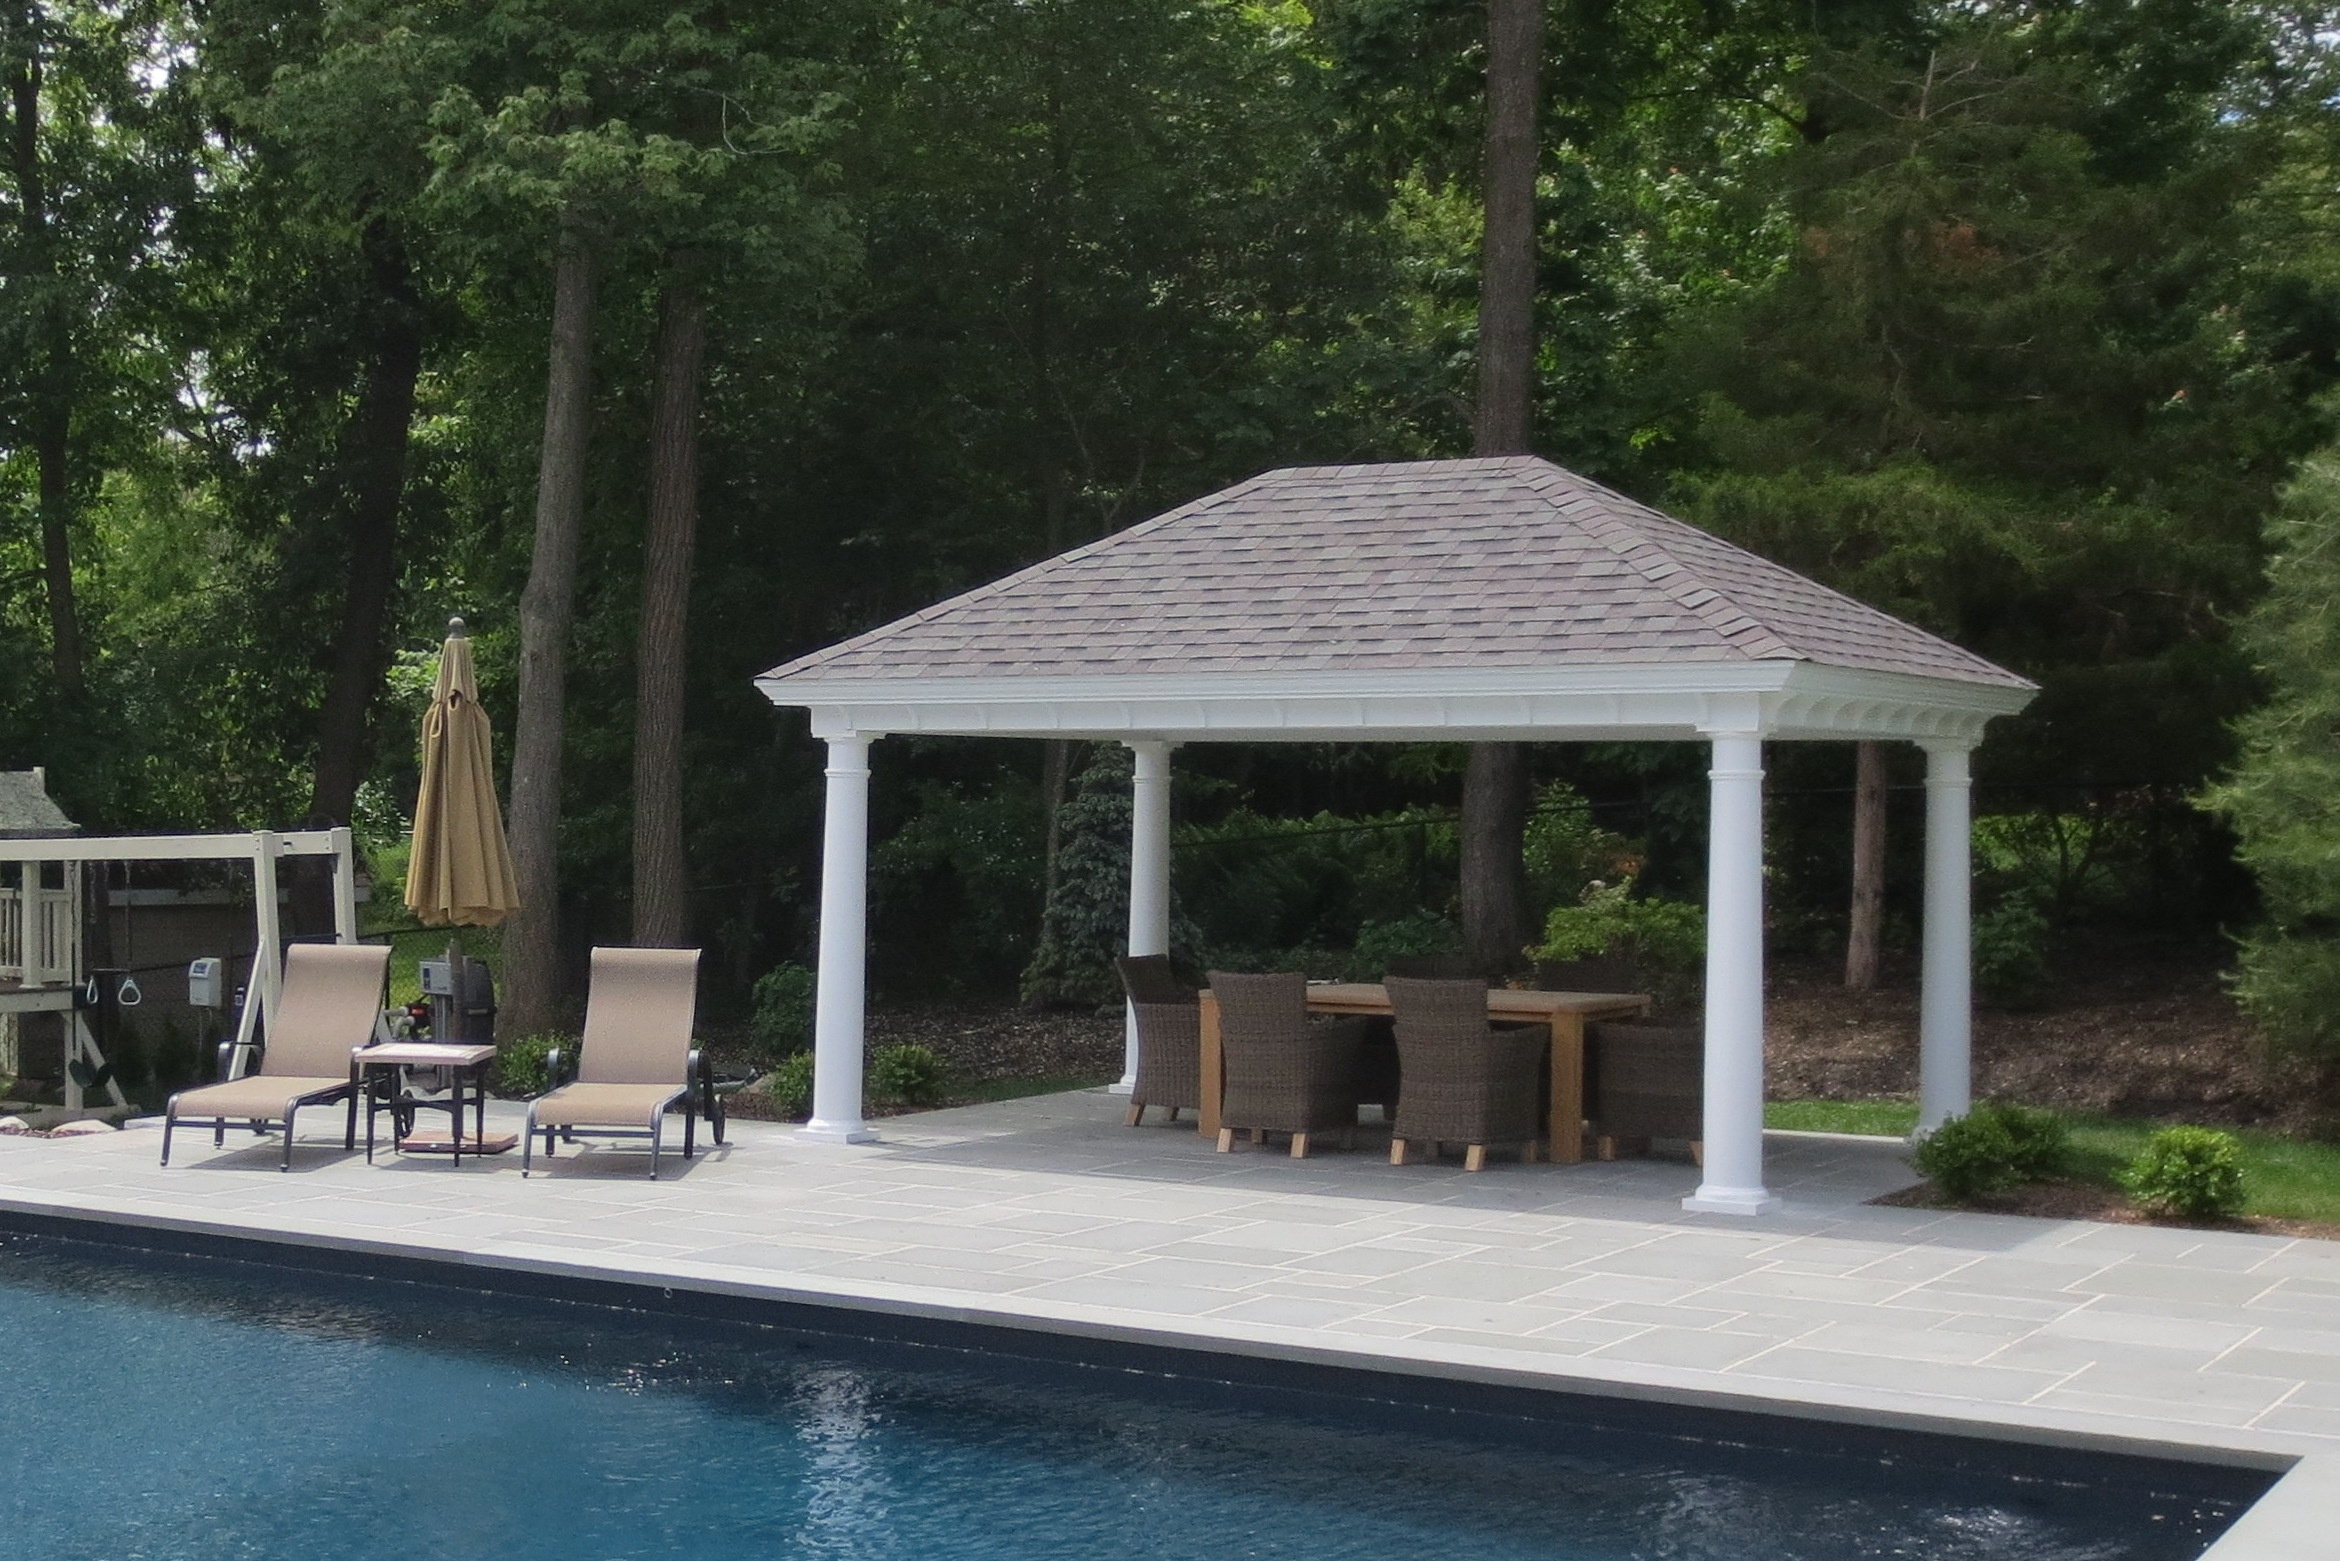 Outdoor pool pavilions custom vinyl timber frame pa for Pool pavilion plans